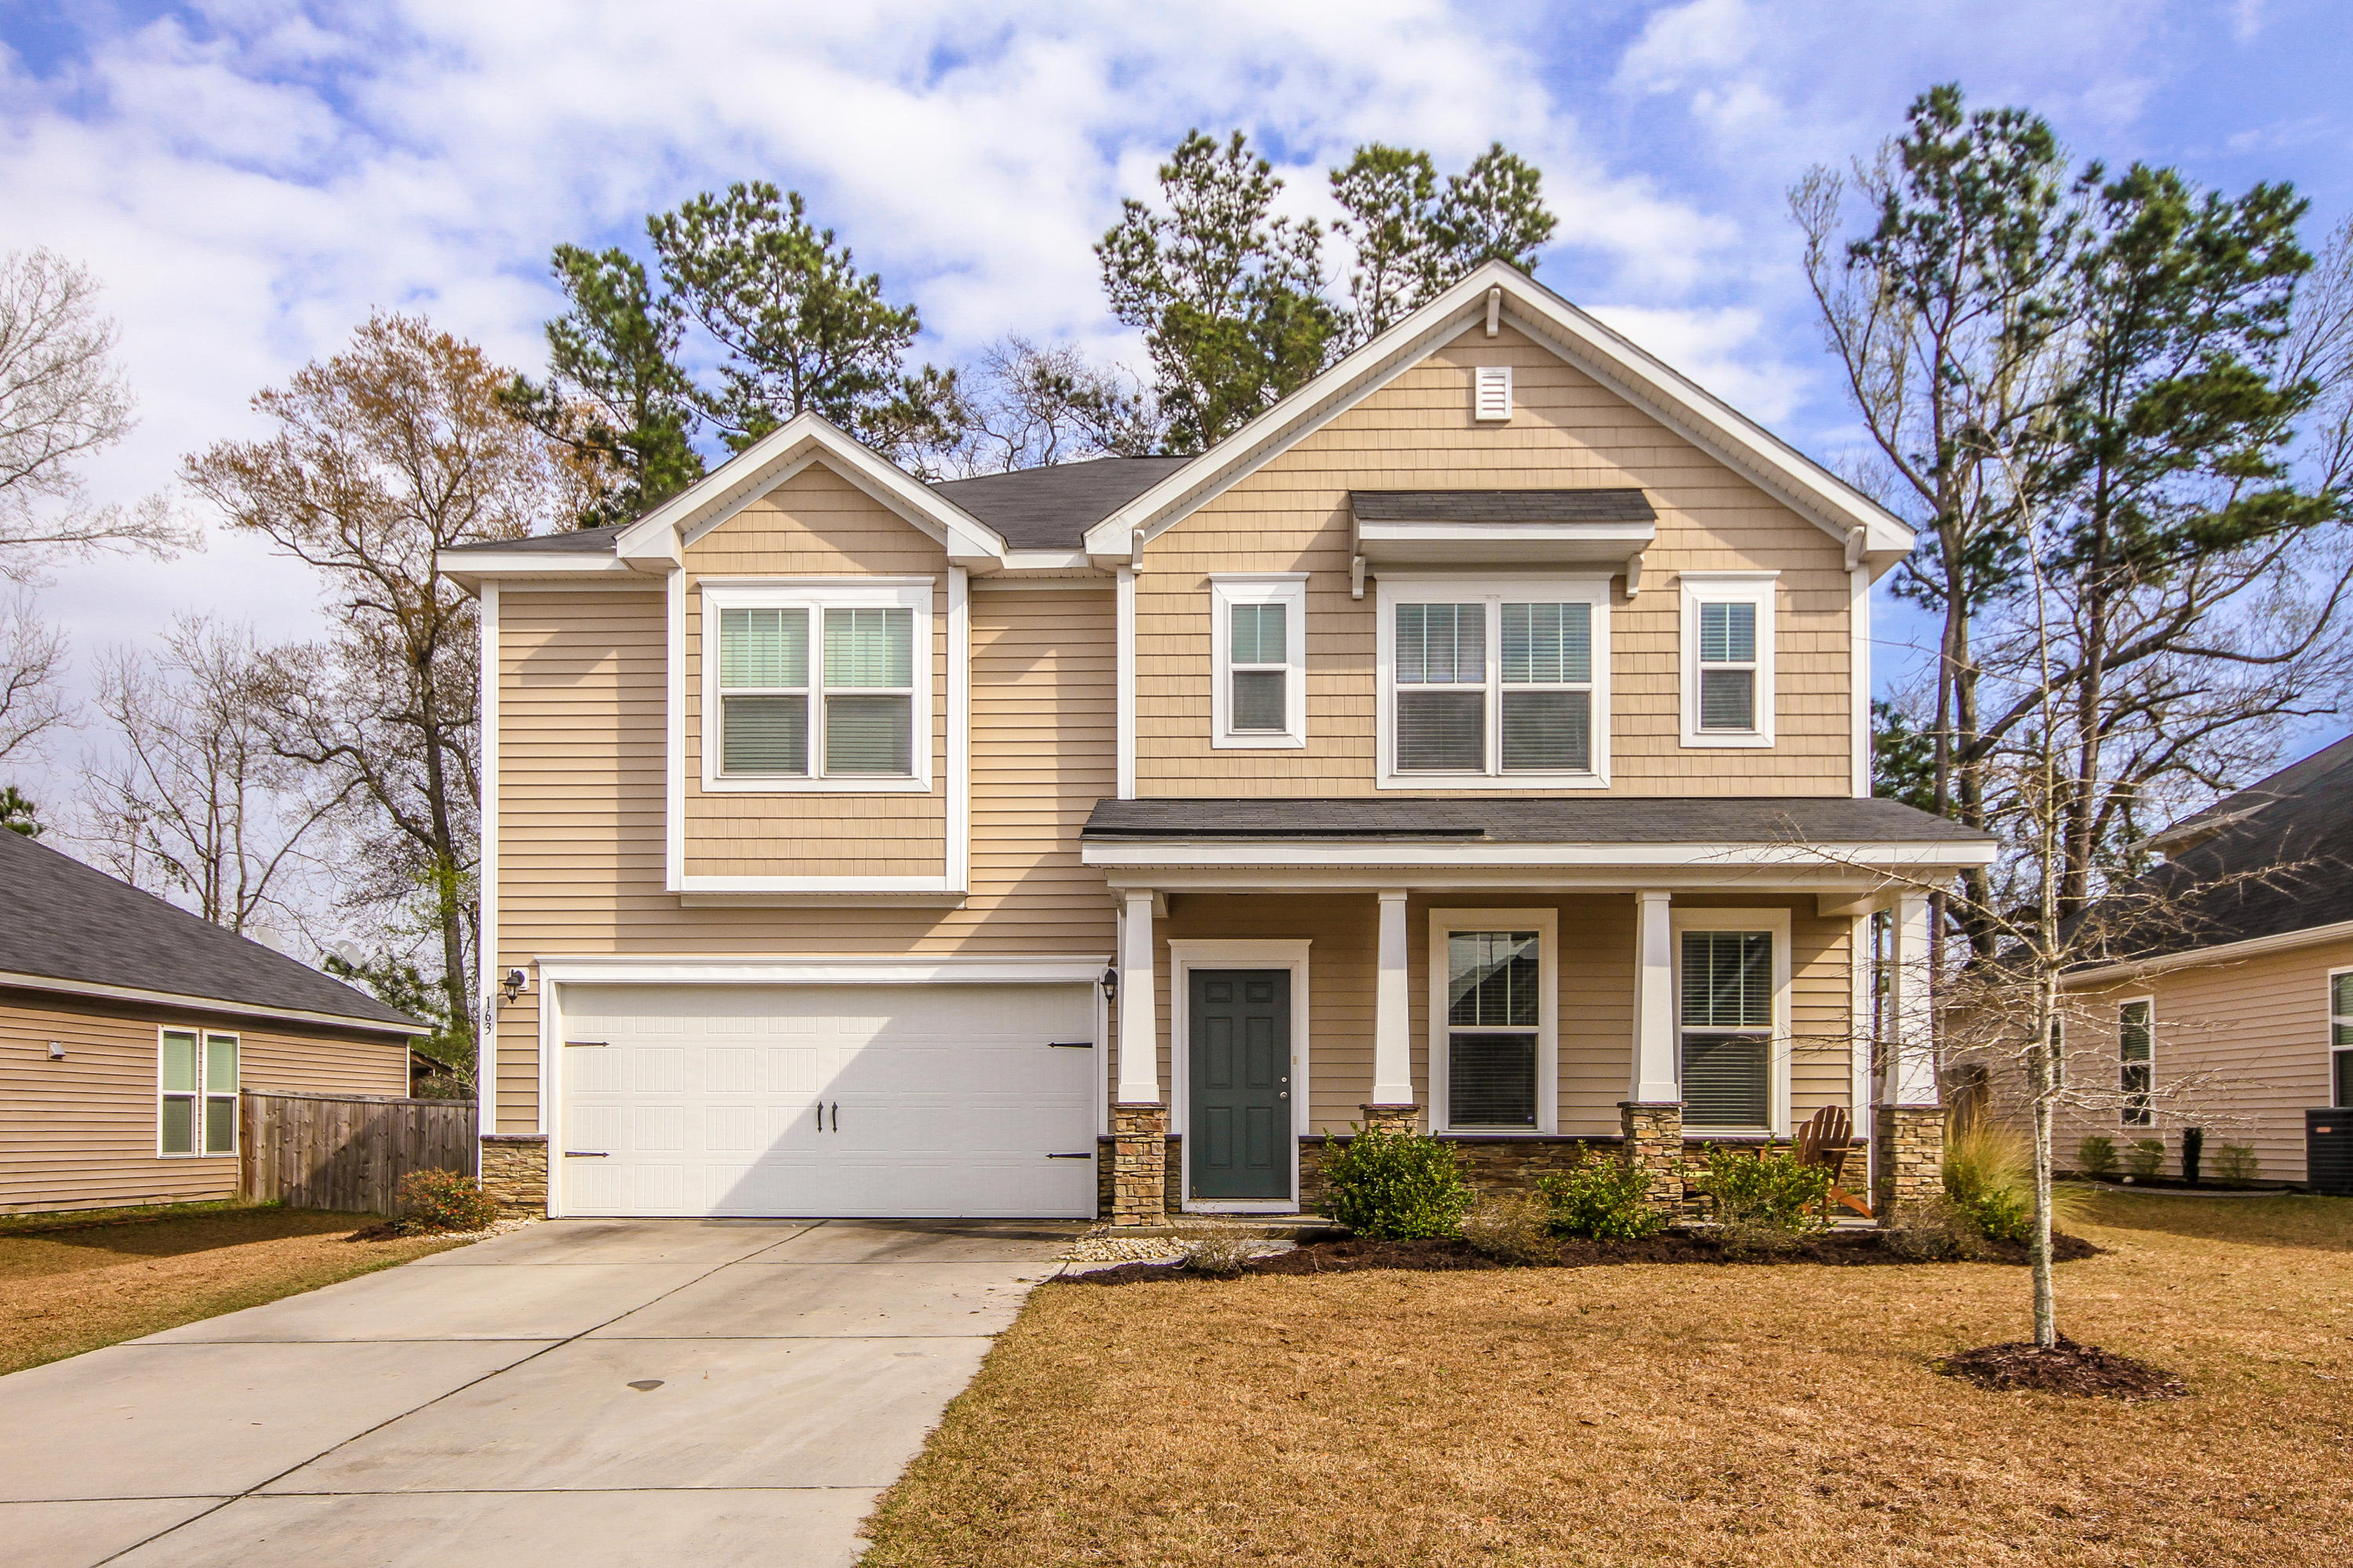 163 Meadow Wood Road Summerville, Sc 29486